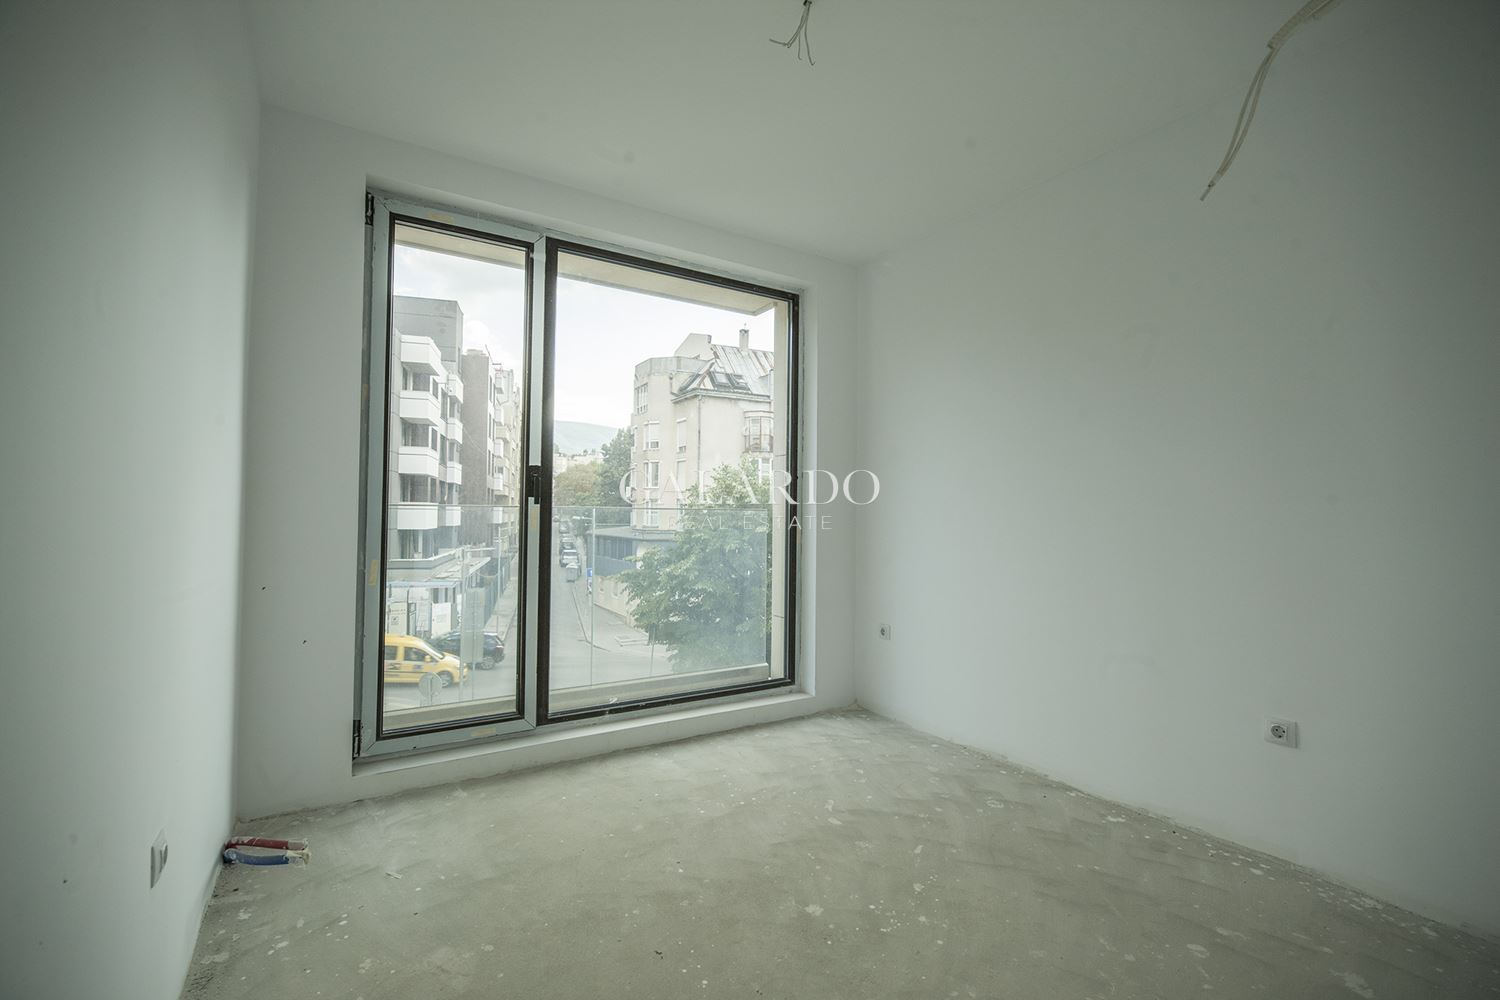 Apartment in a new building near South Park